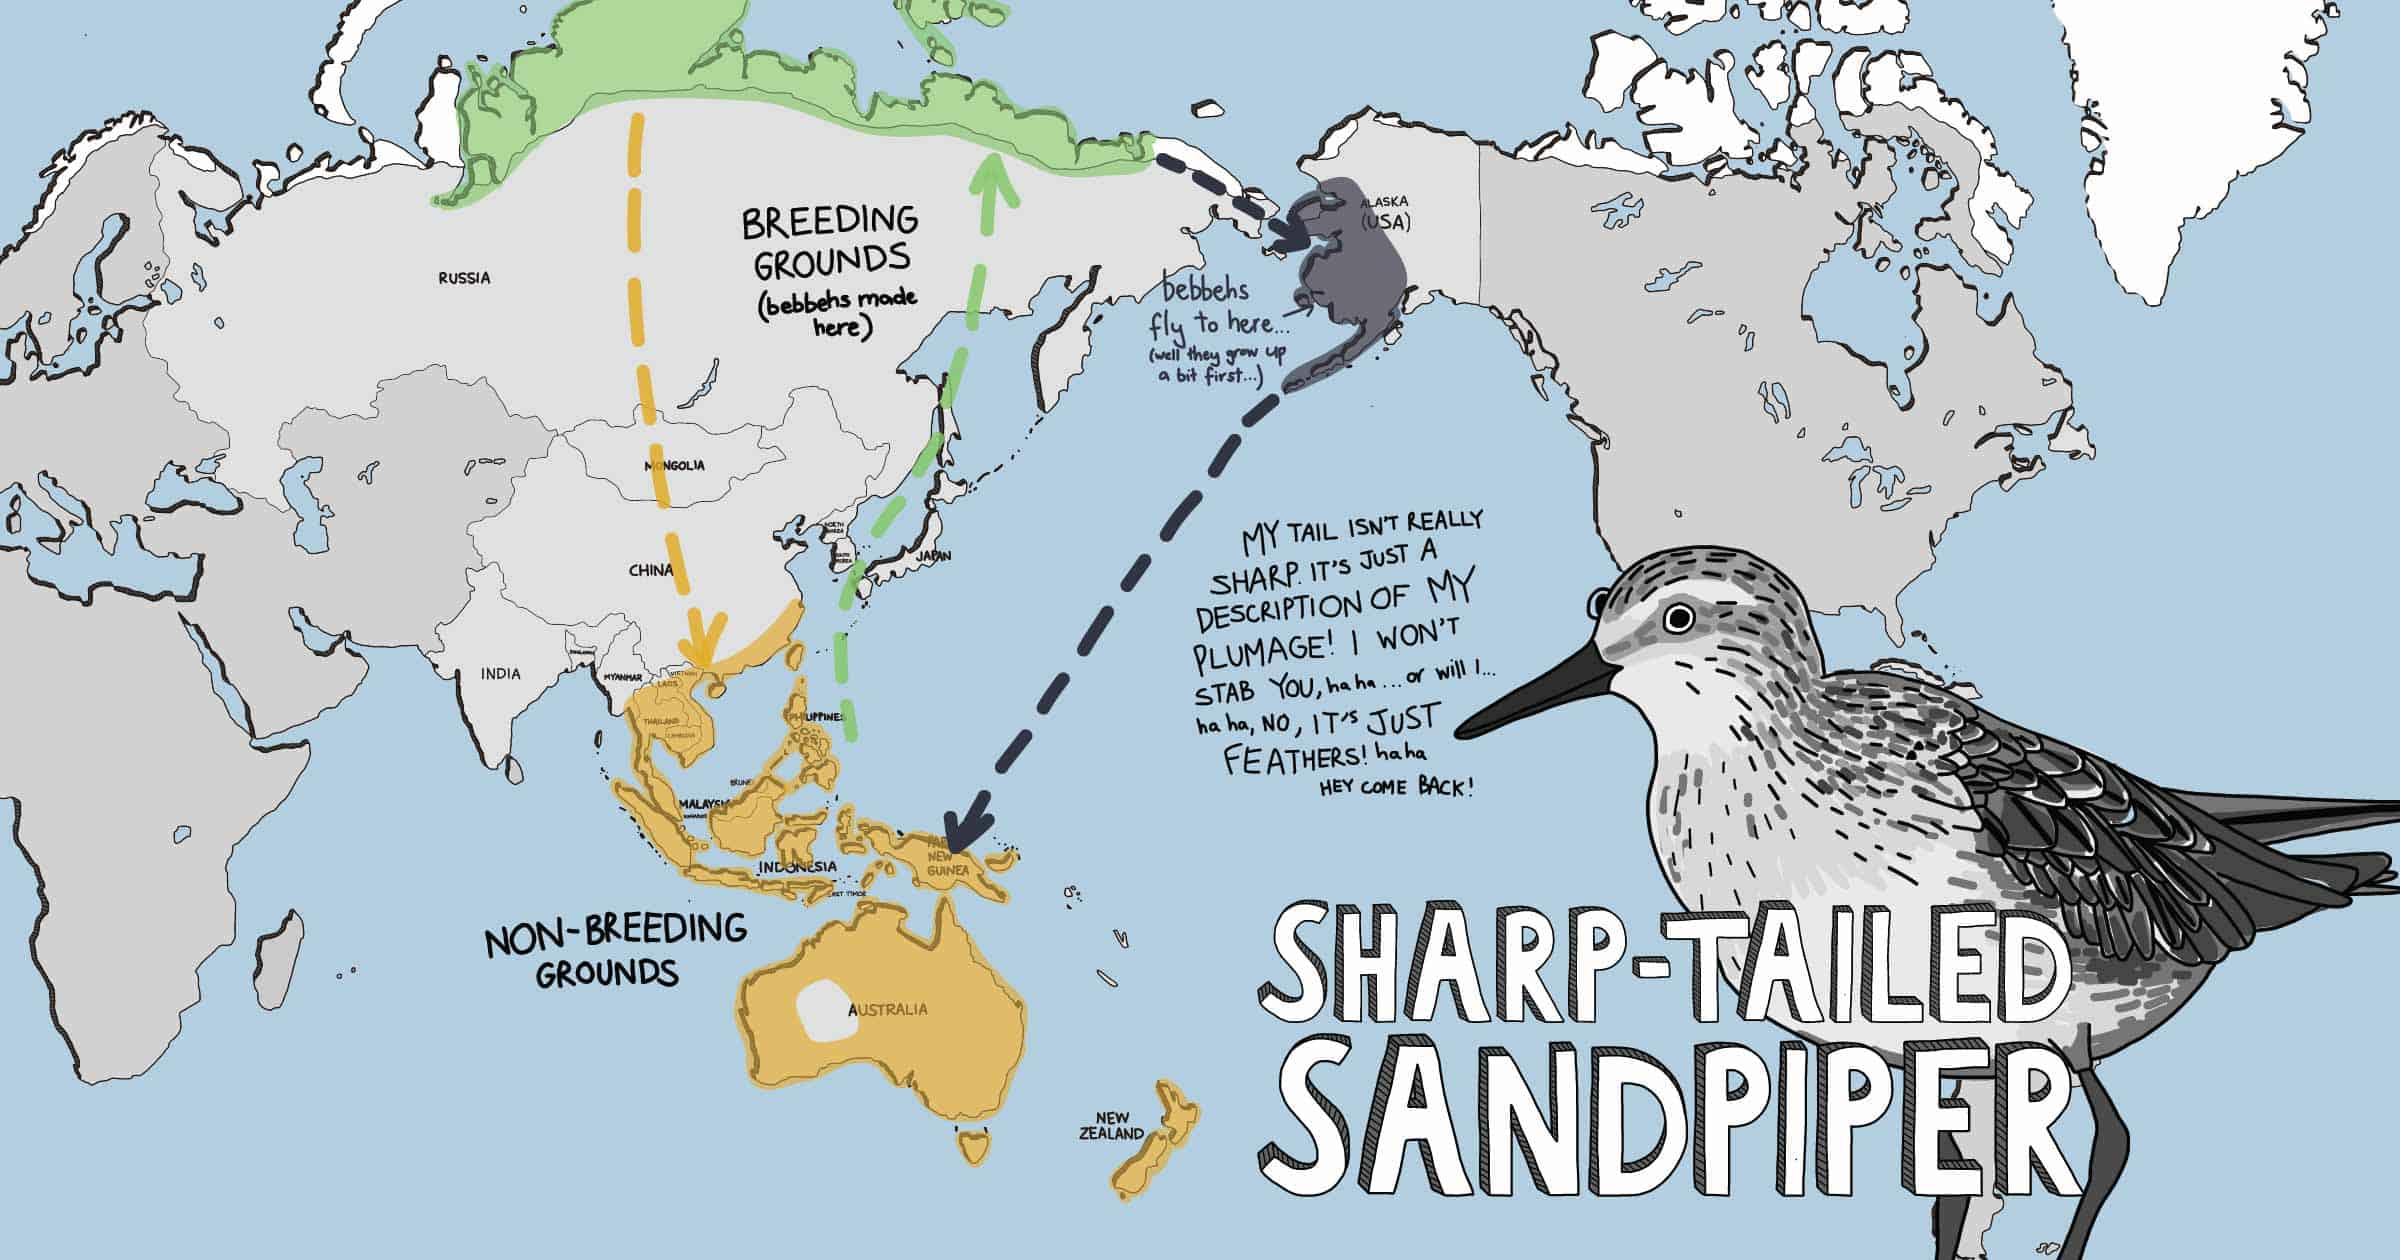 Cartoon world map showing distribution of the Sharp-tailed Sandpiper